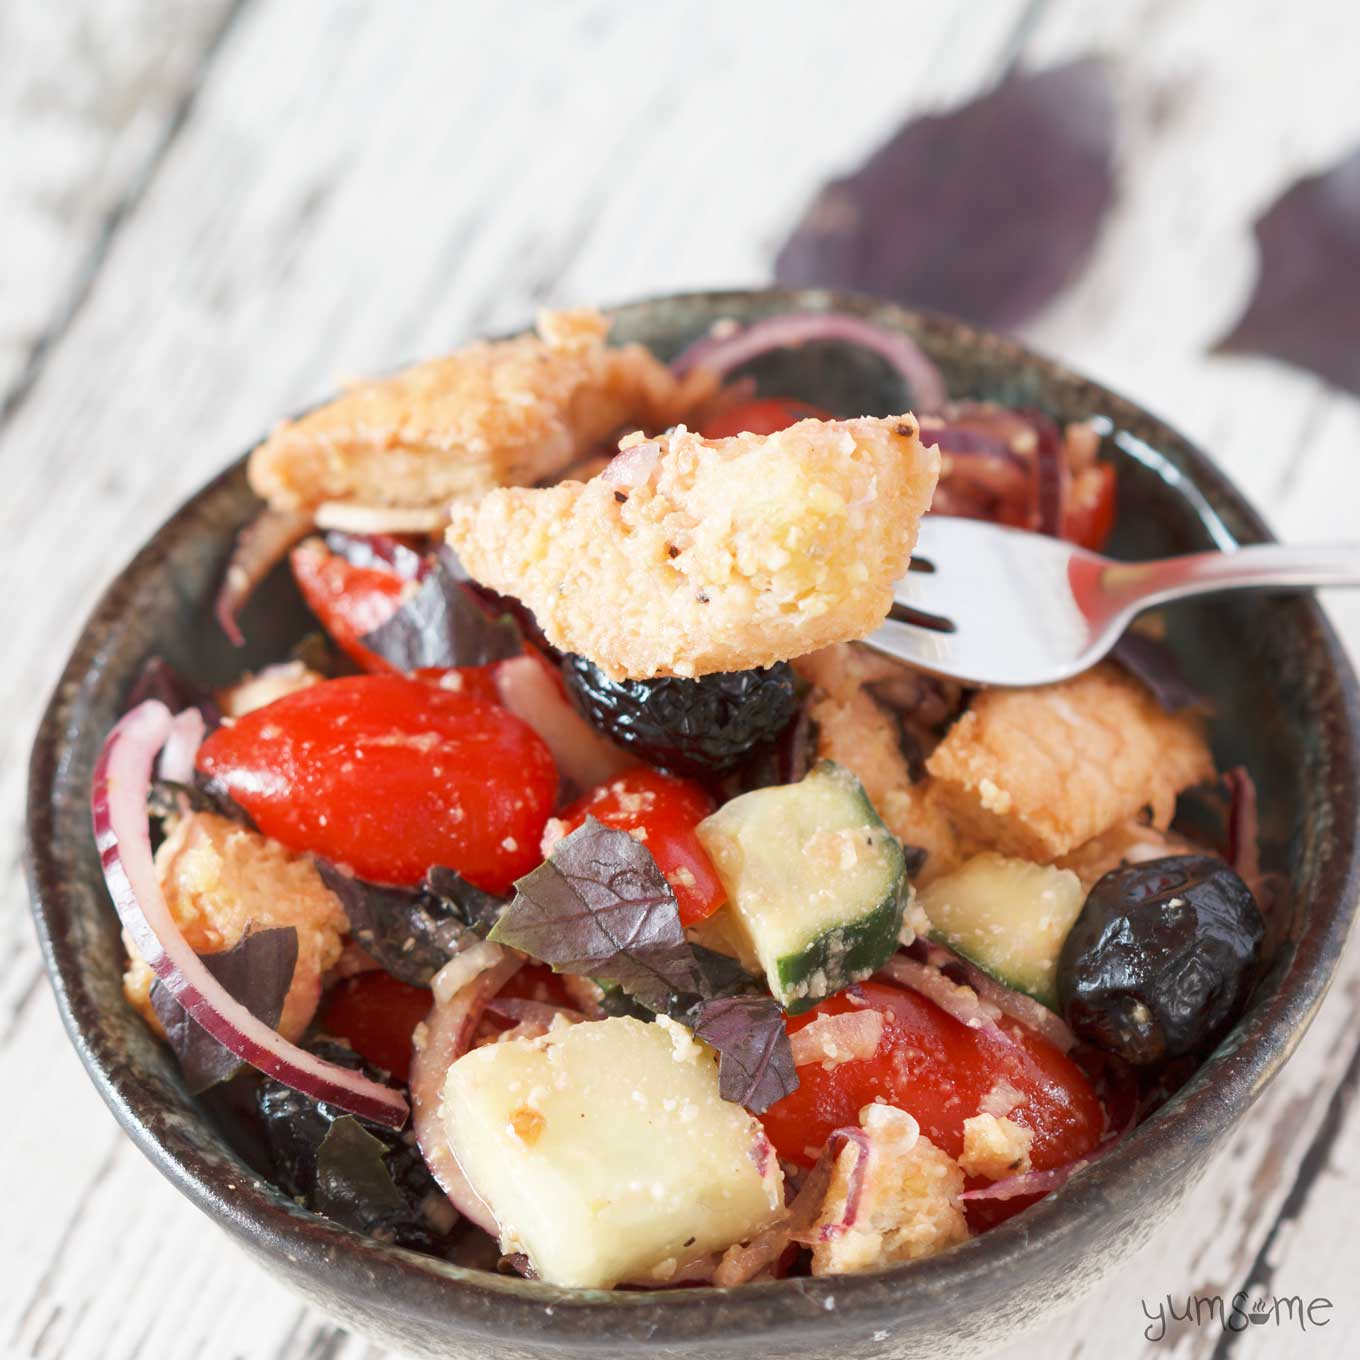 A bowl of vegan panzanella with a fork holding a piece of bread.